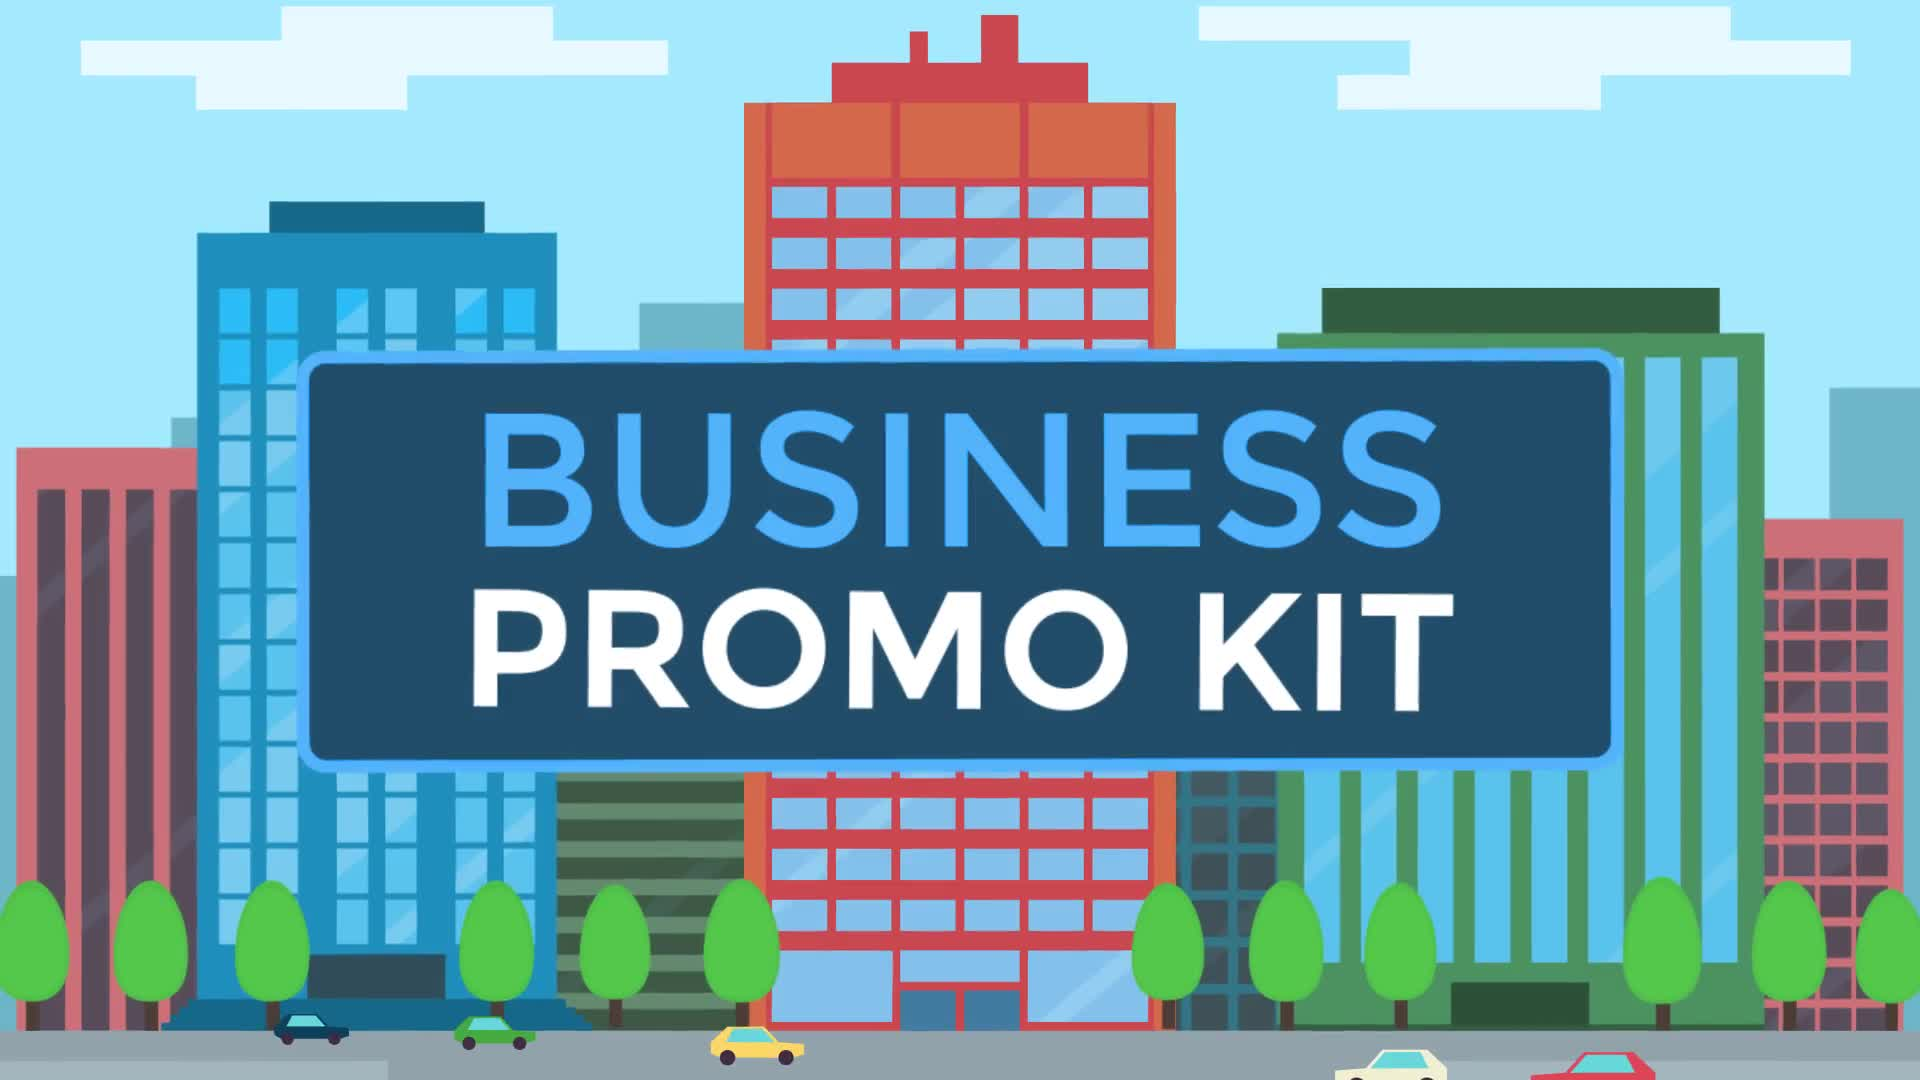 Business Promo Kit - Download Videohive 17090944